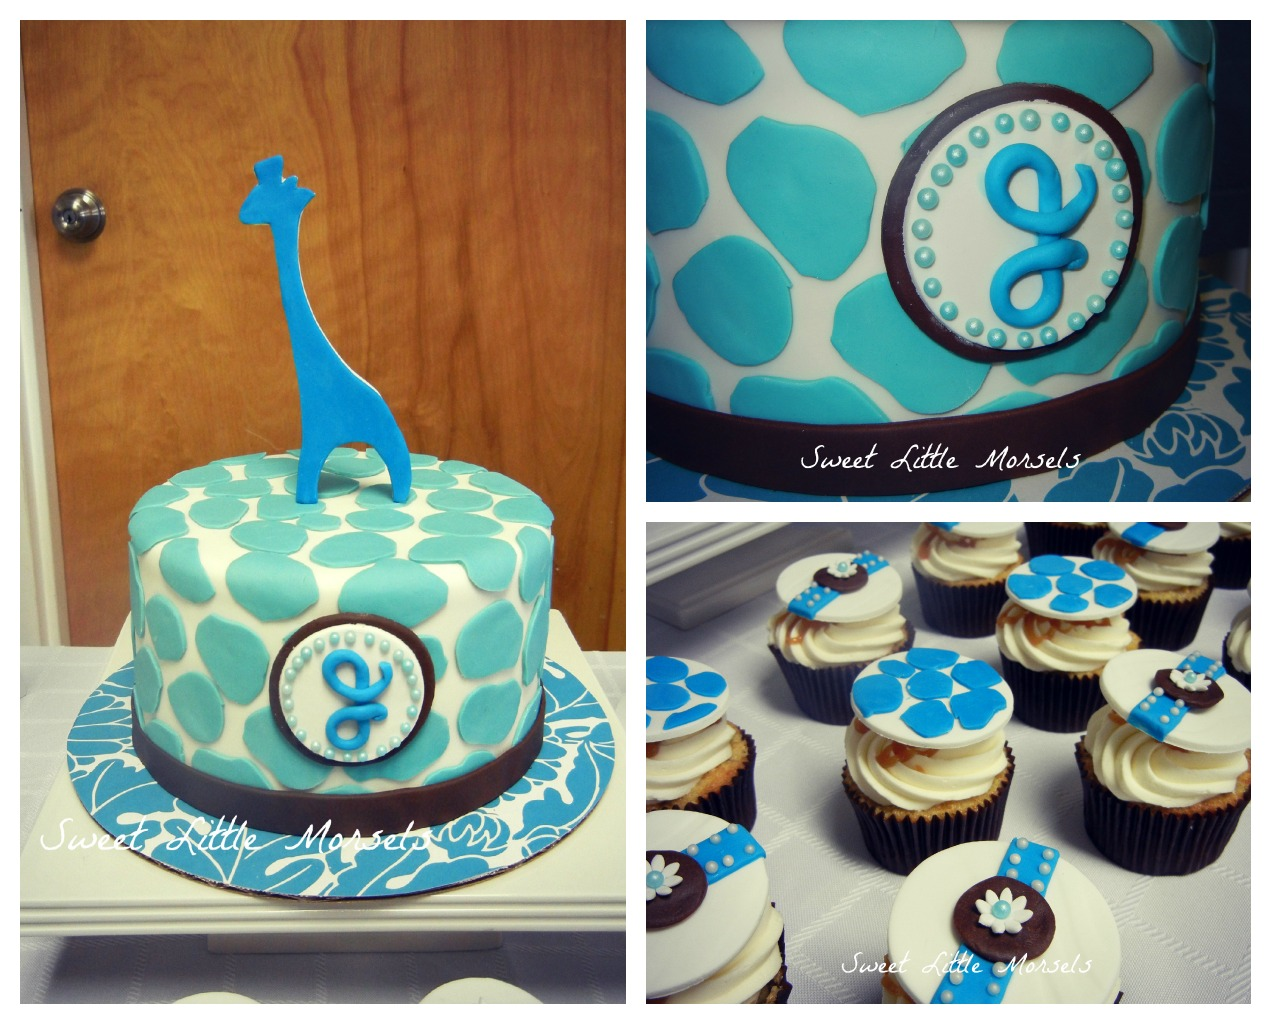 pin giraffe theme baby shower cake and cupcakes cake on pinterest